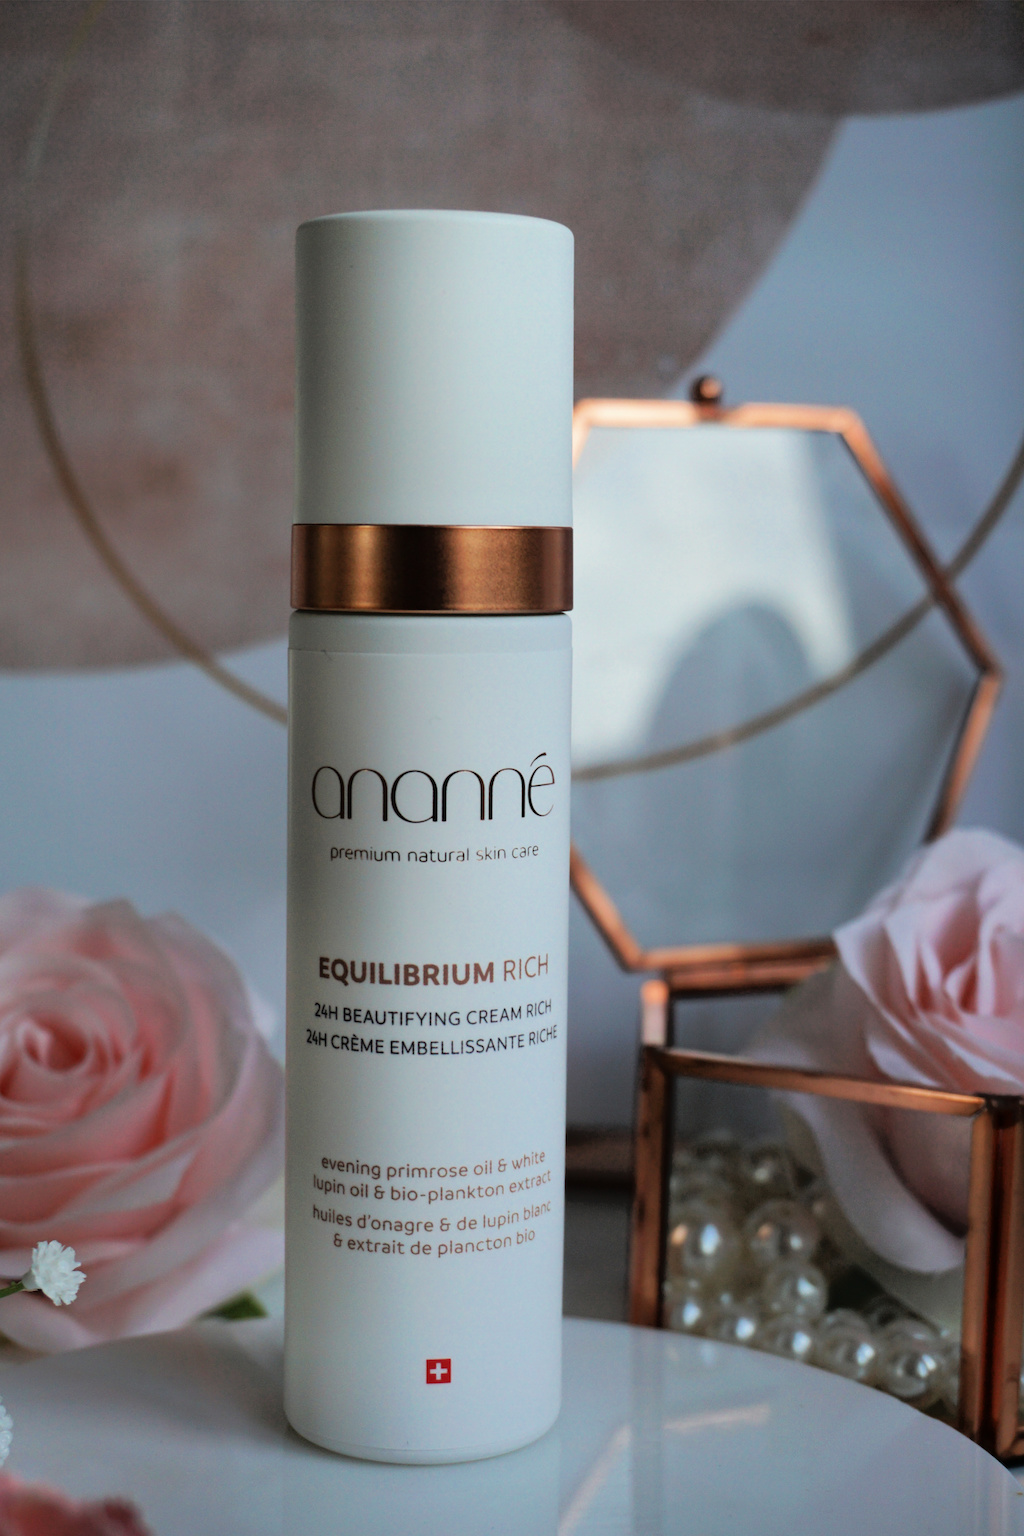 Ananné EQUILIBRIUM RICH 24h Beautifying Cream